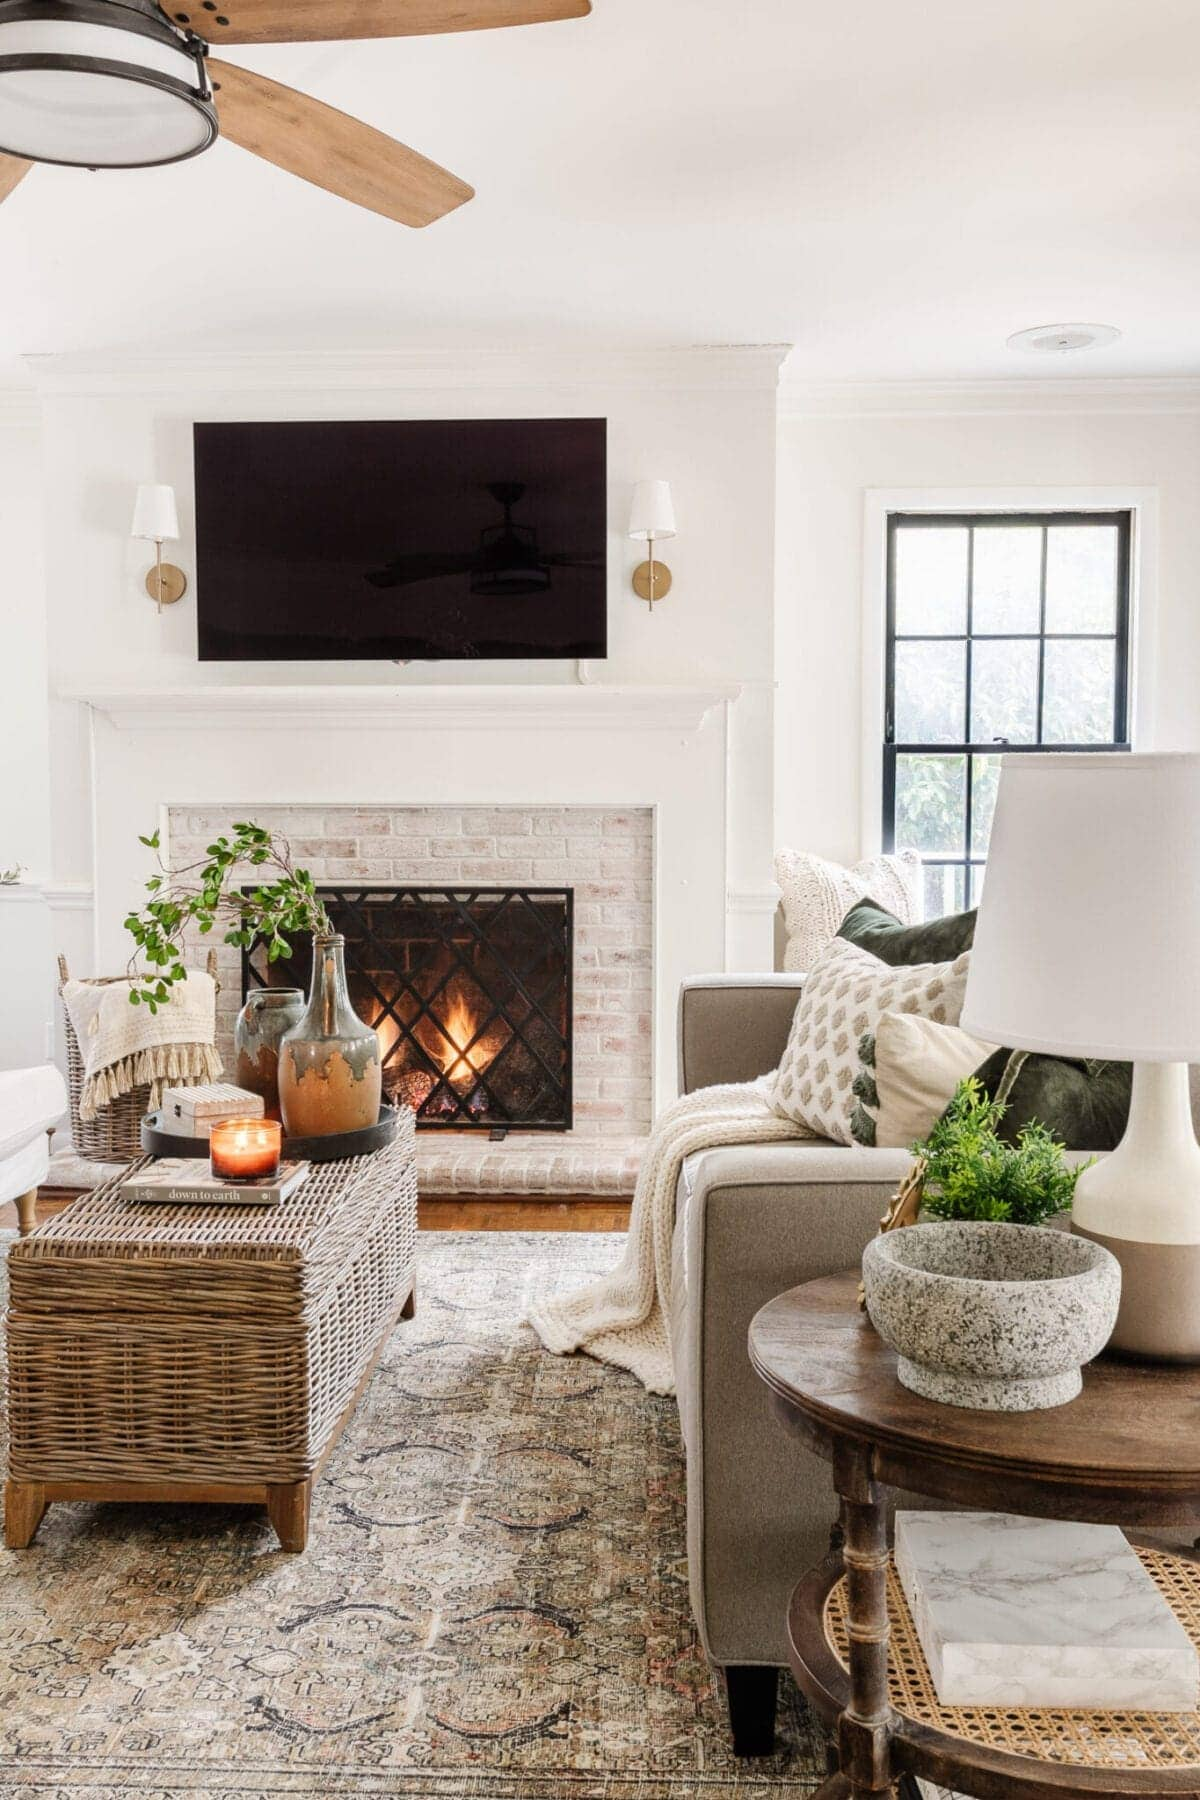 Winter Decor in a Living Room